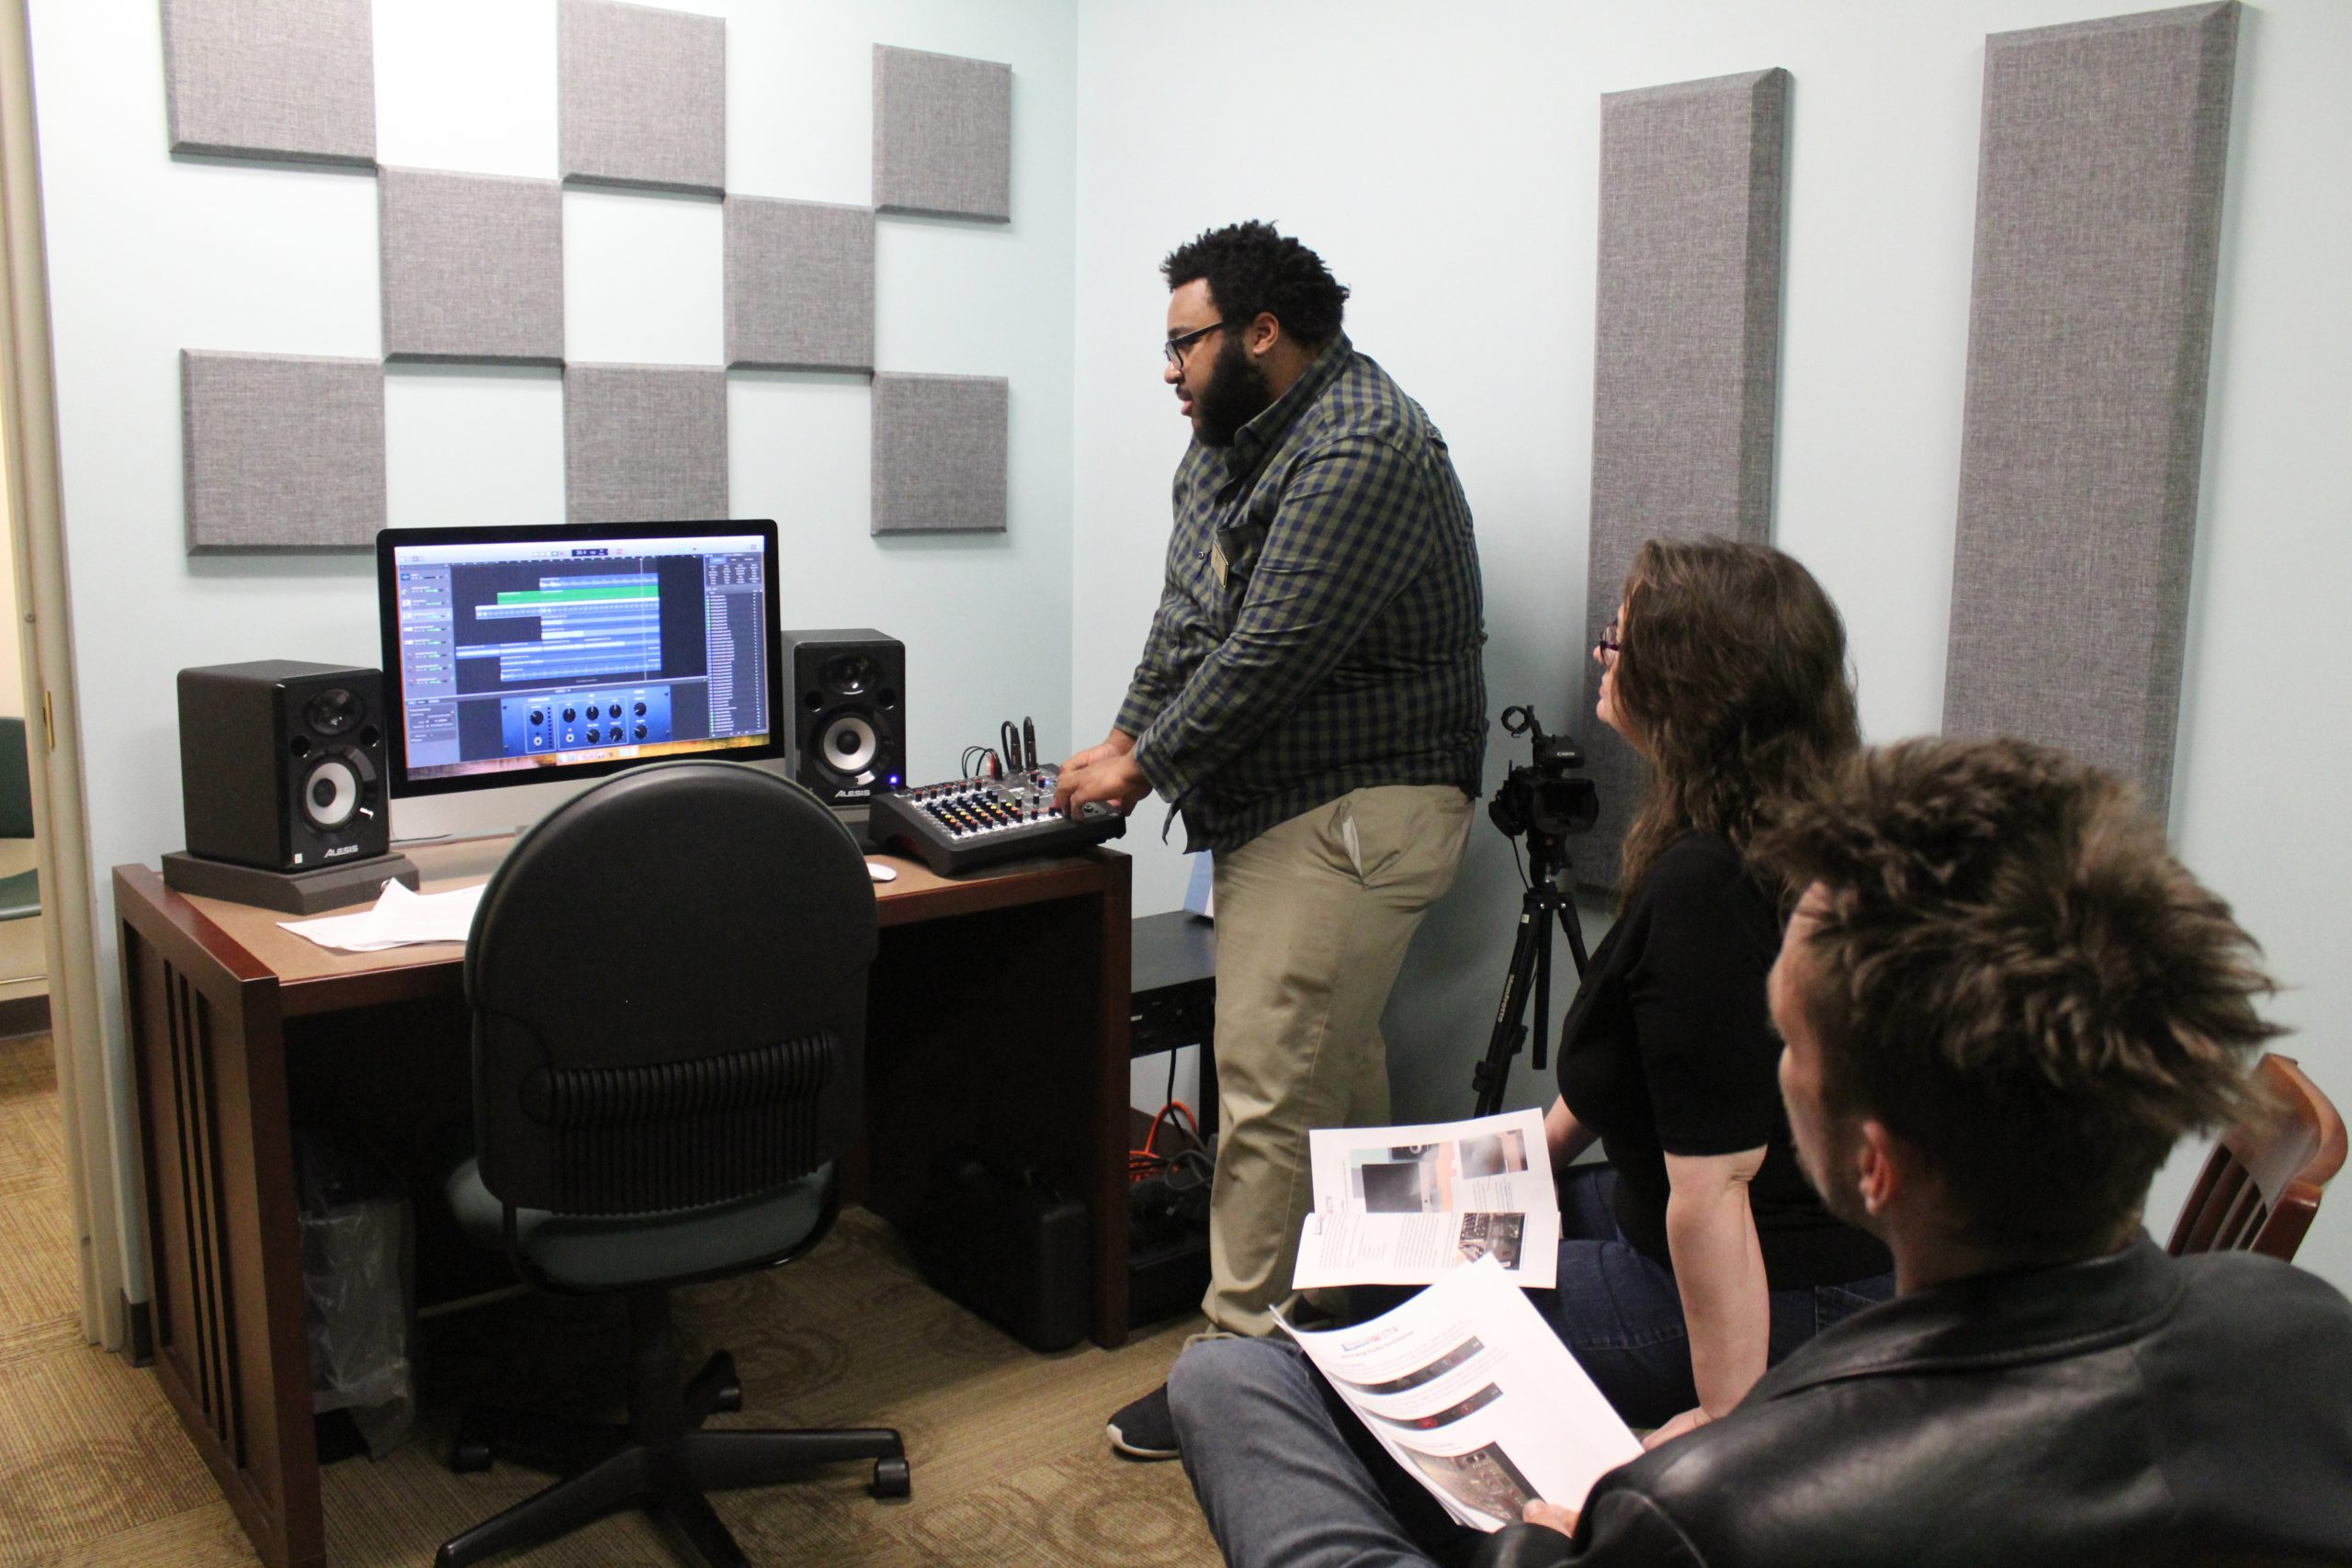 Recording Studio Orientation class located inside the library